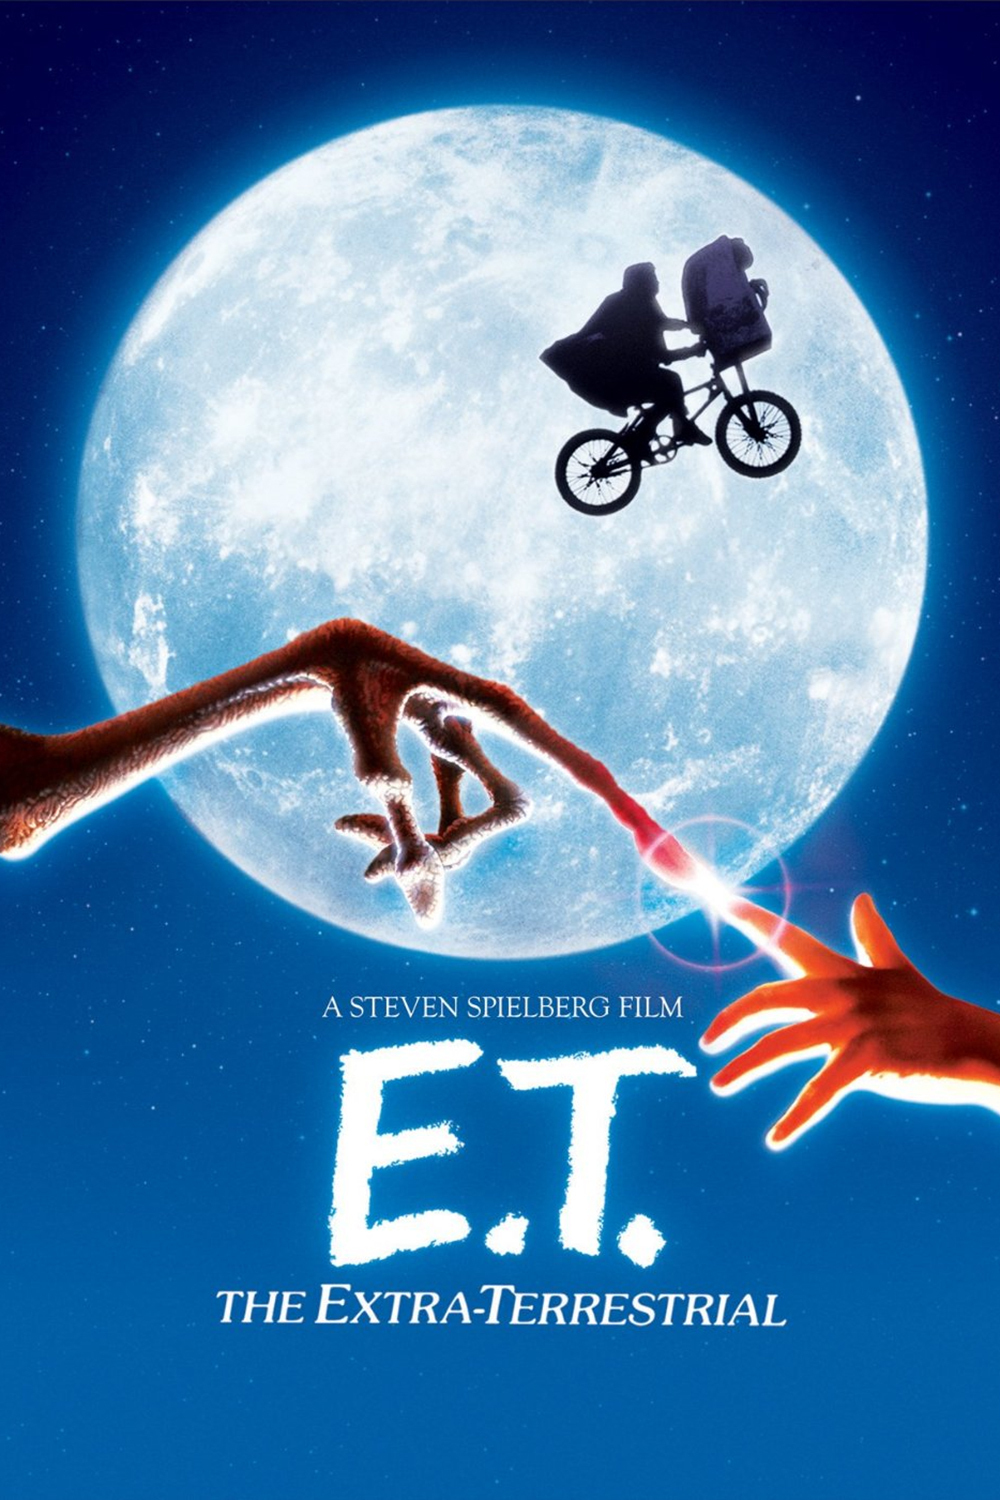 ET is considered as one of the Steven Spielberg's best films and a personal project too